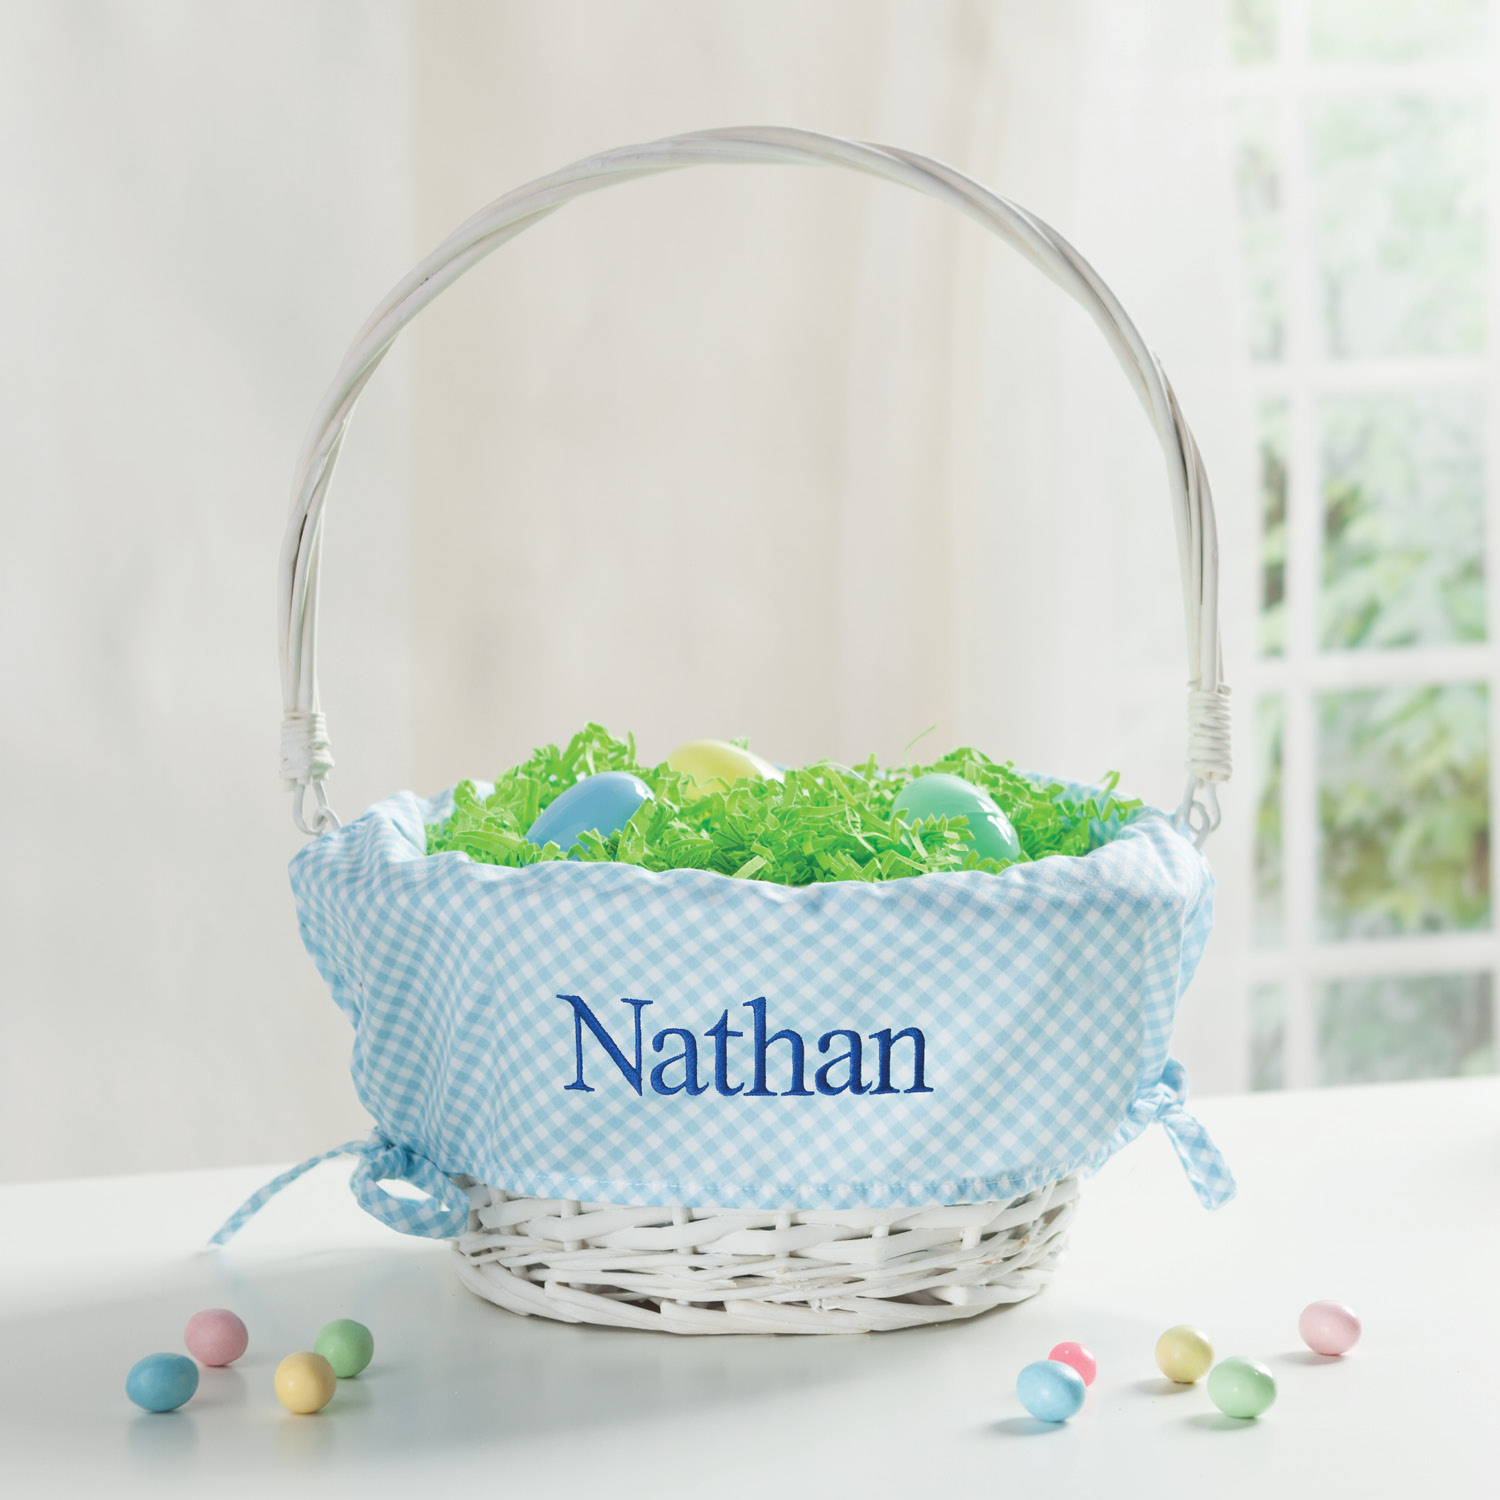 Personalized Wicker Easter Basket – Blue Liner